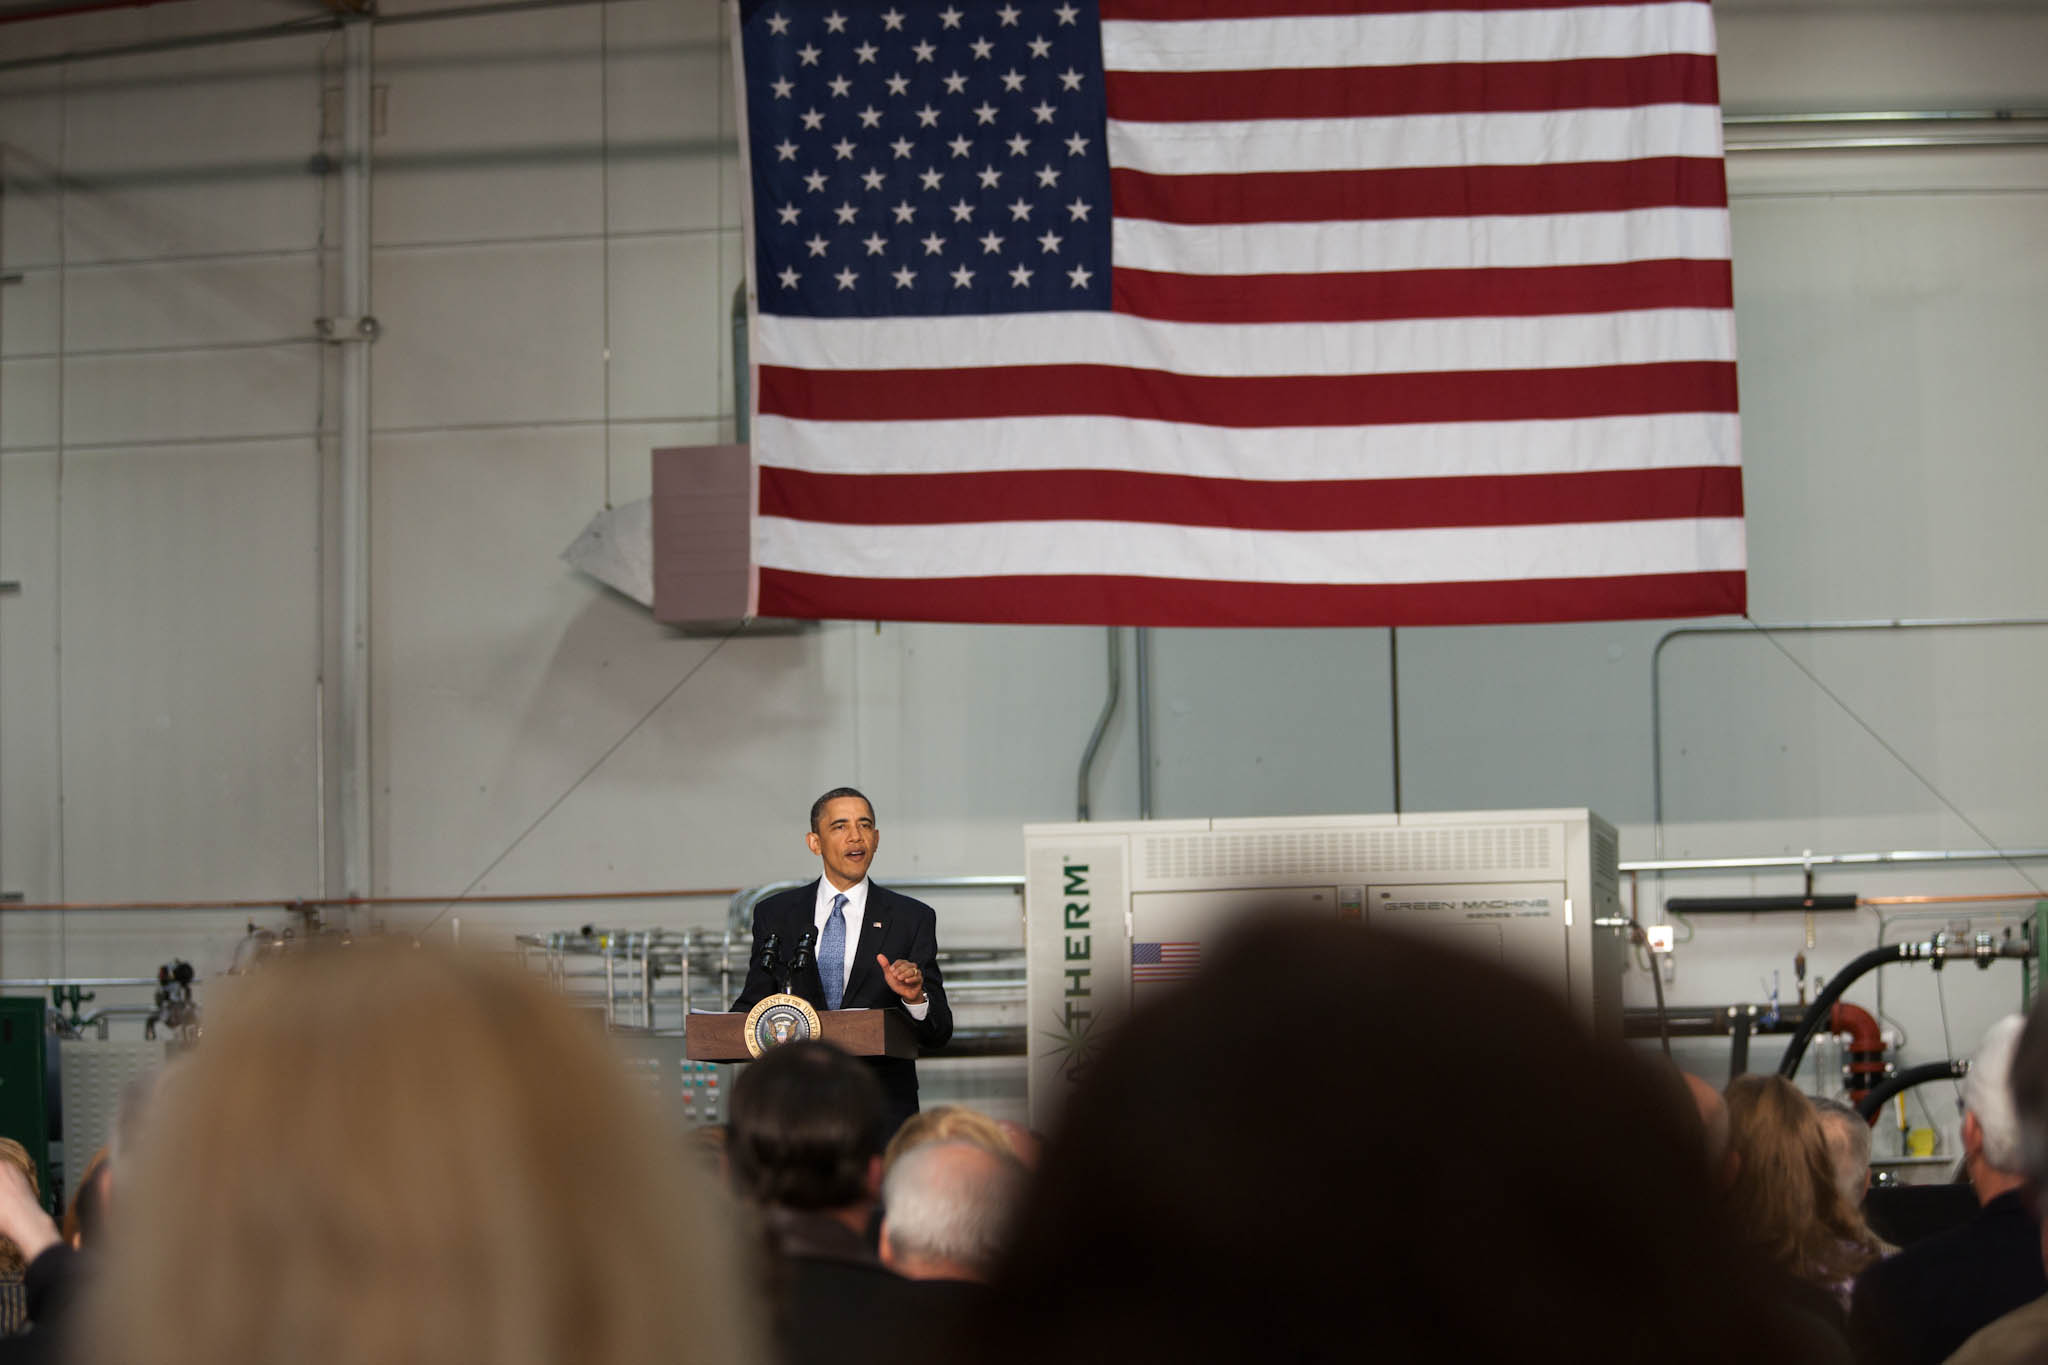 President Barack Obama Holds a Town Hall Meeting at ElectraTherm, Inc. in Reno, Nevada